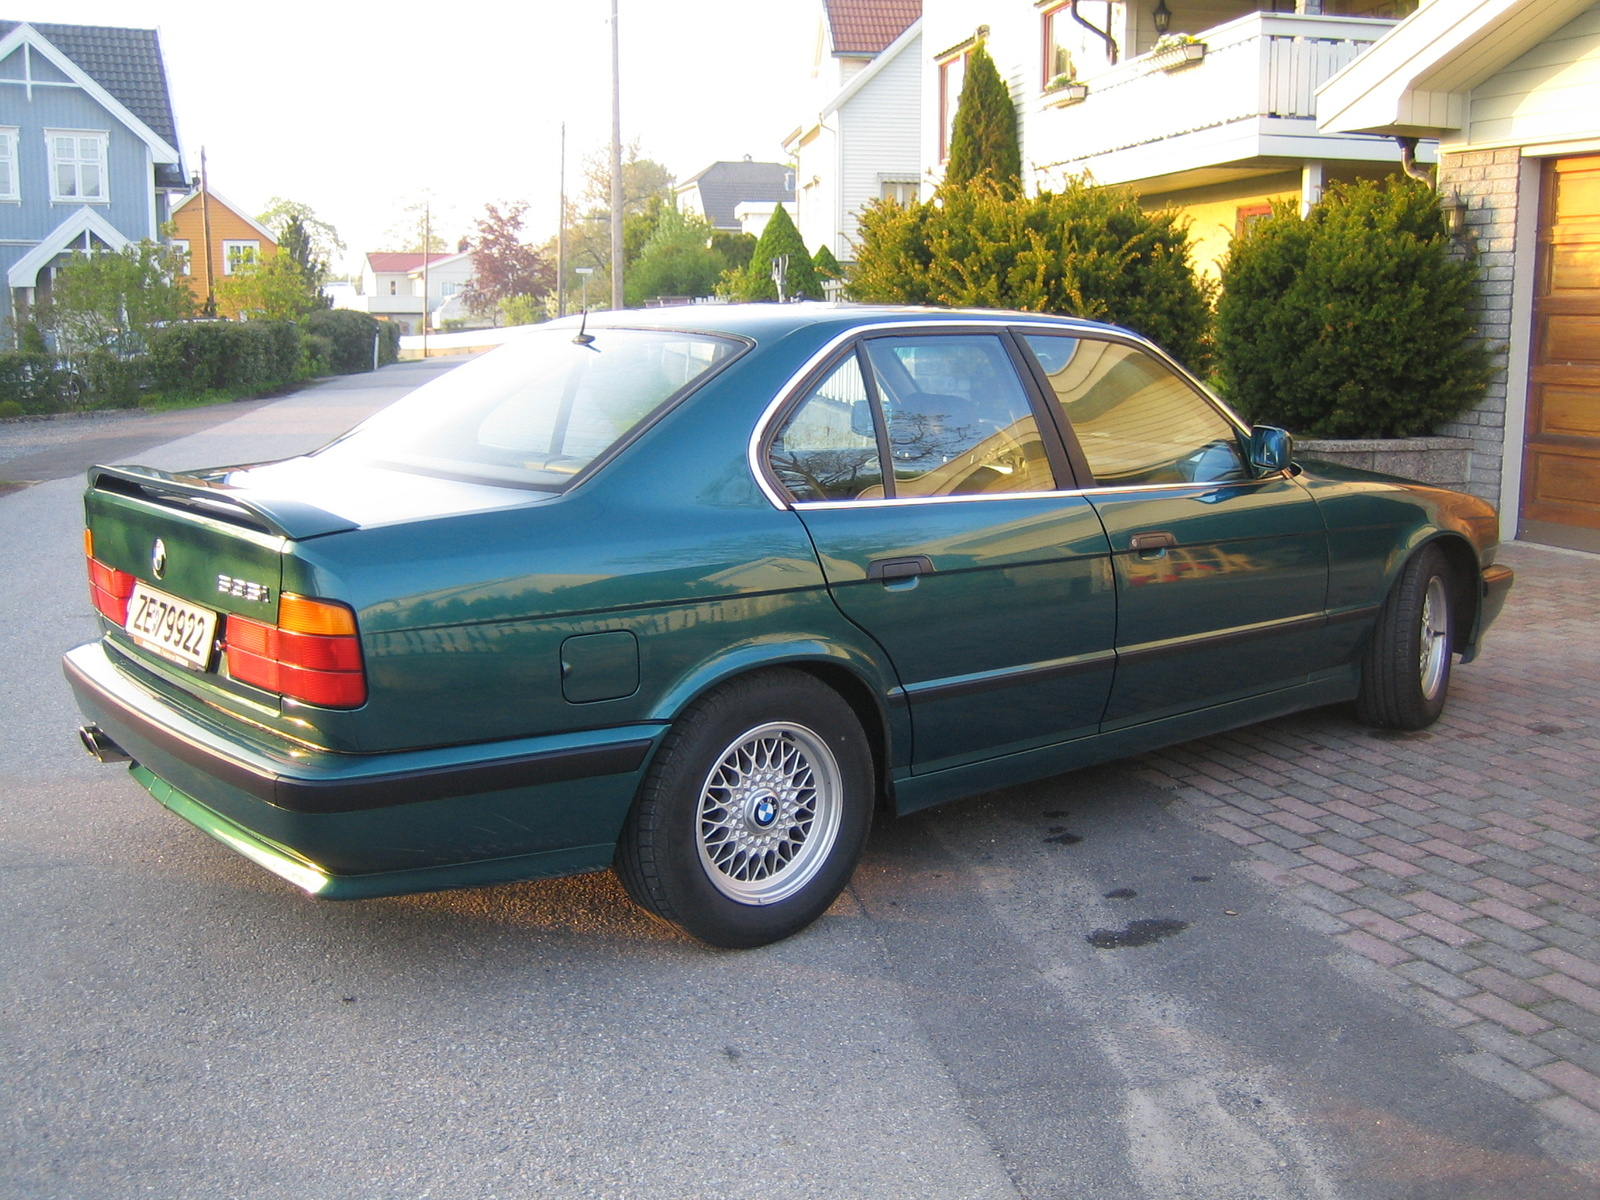 BMW 5 series 535i 1982 photo - 11